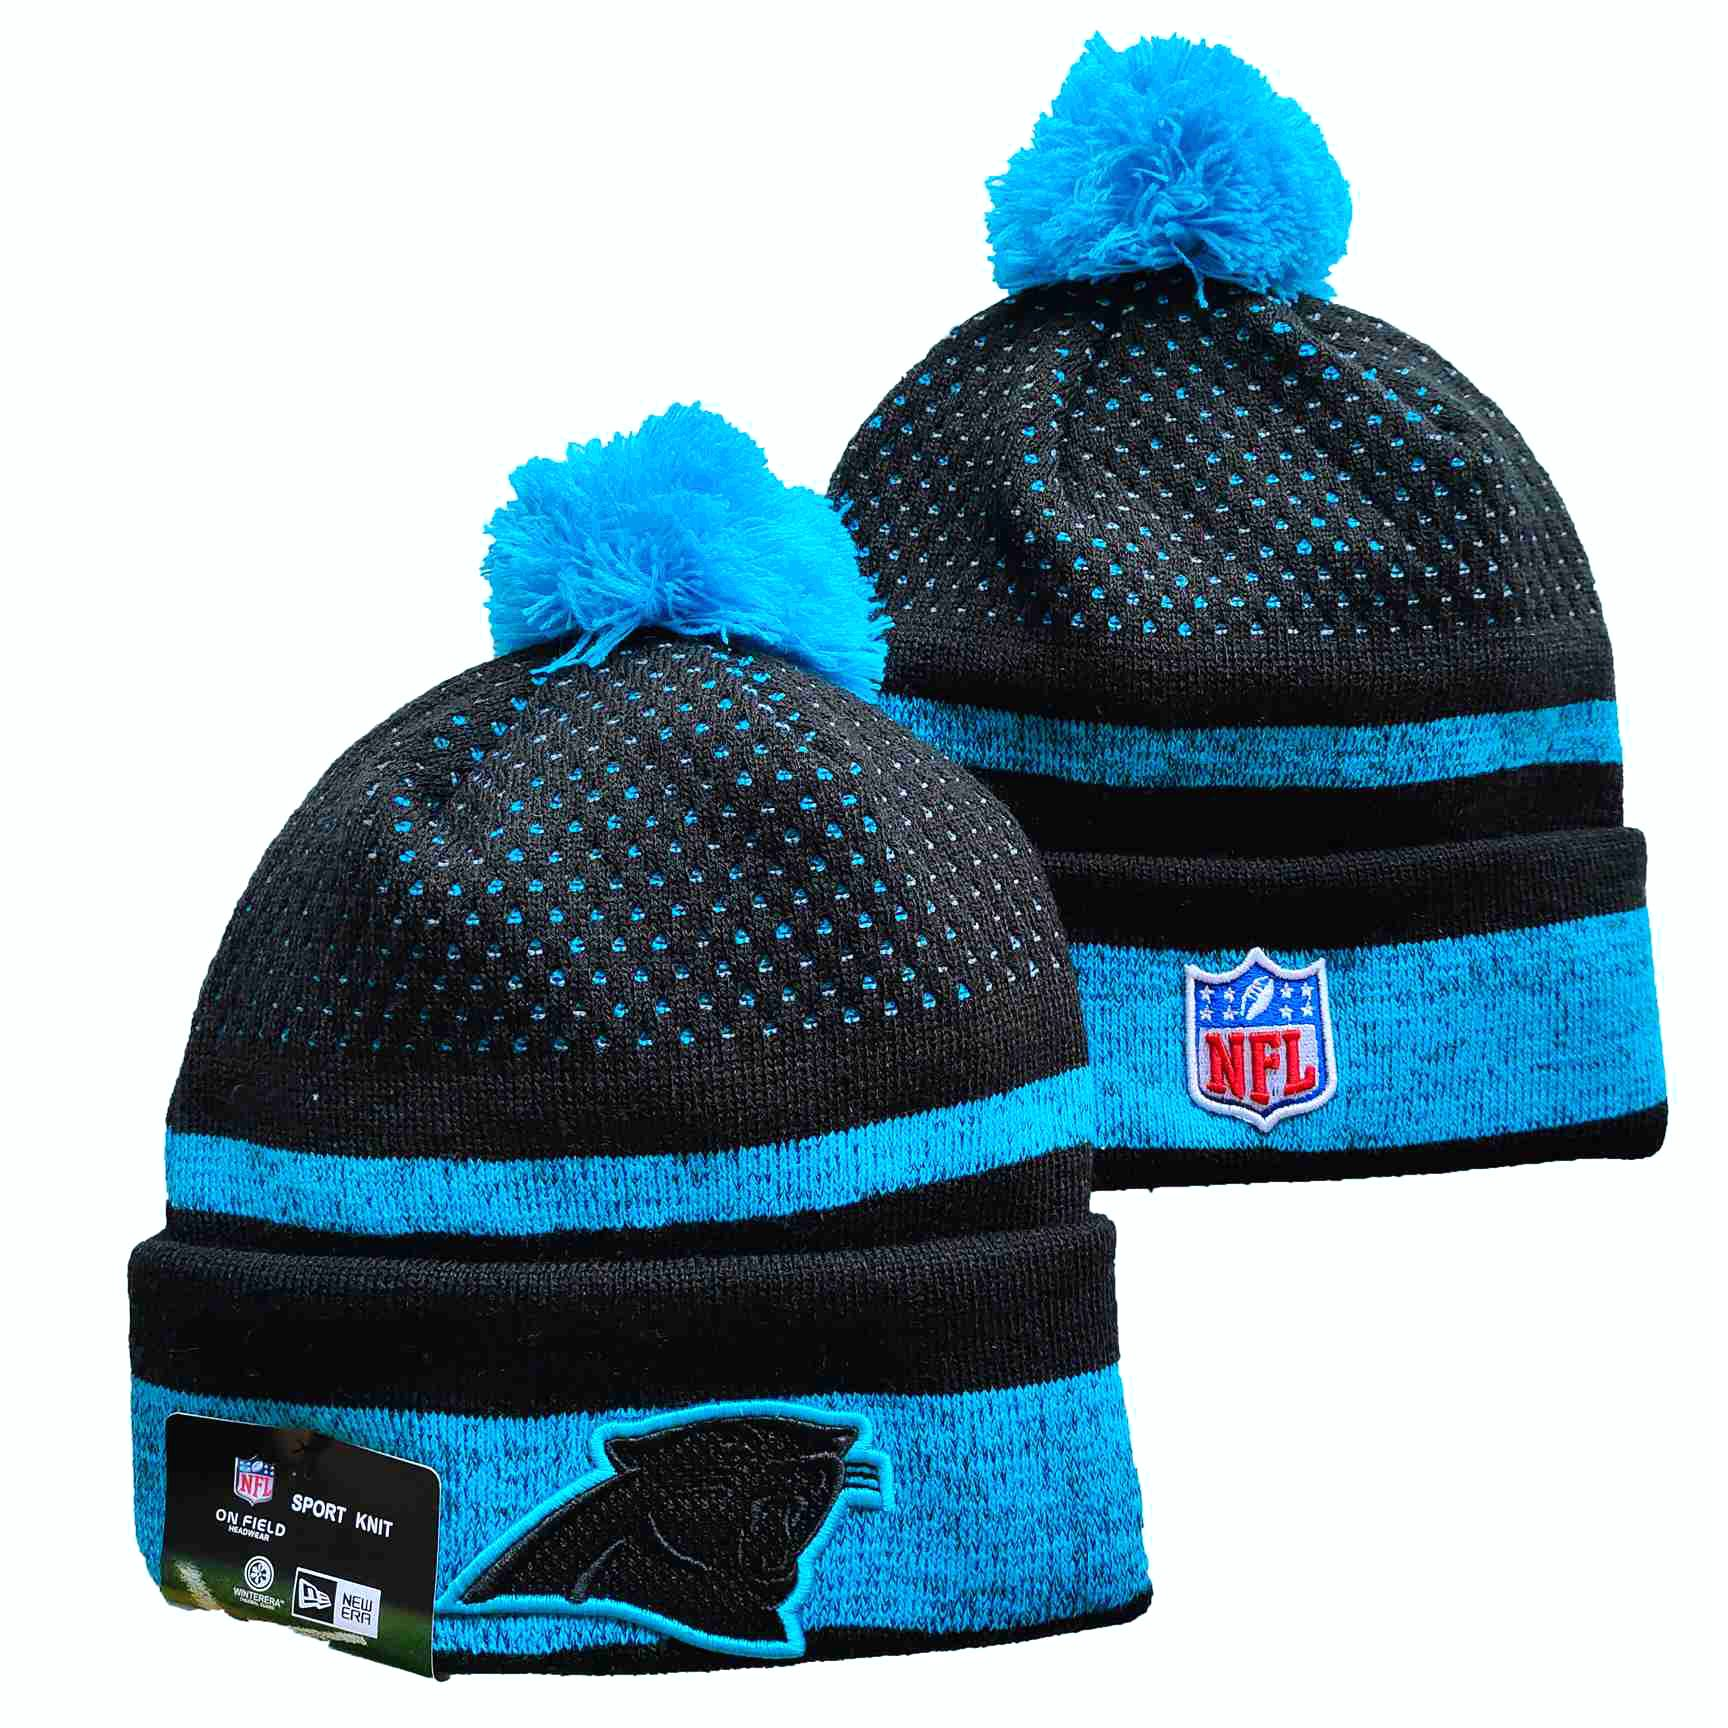 Panthers Team Logo Black and Blue Pom Cuffed Knit Hat YD